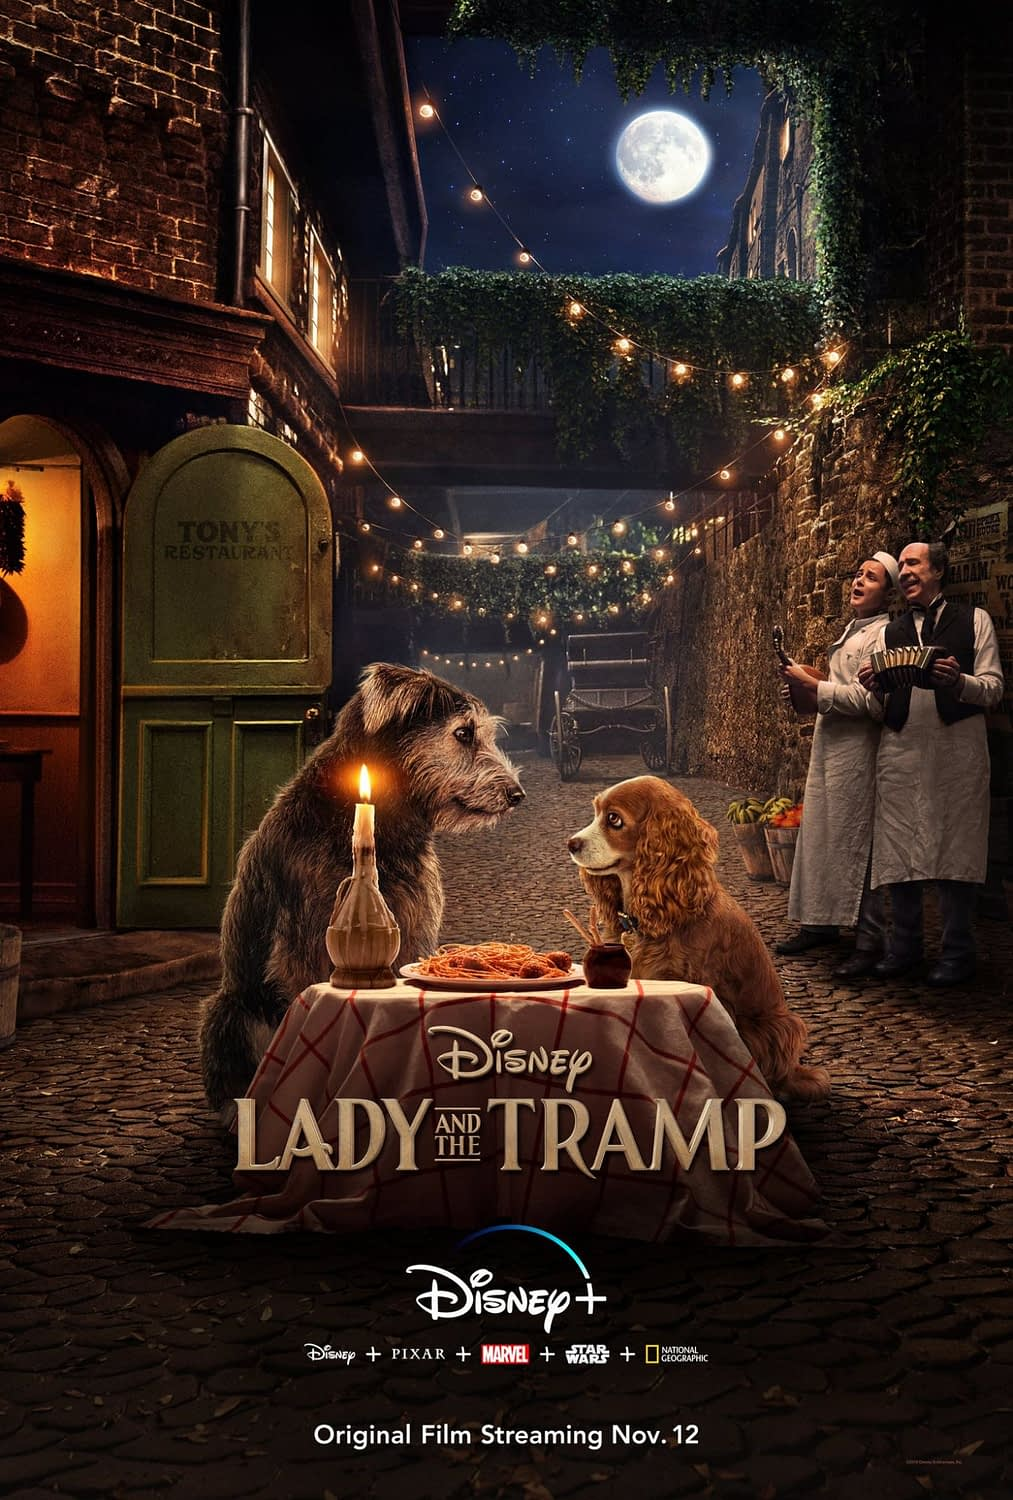 """Disney Releases the Poster for the Disney+ Remake of """"Lady and the Tramp"""""""